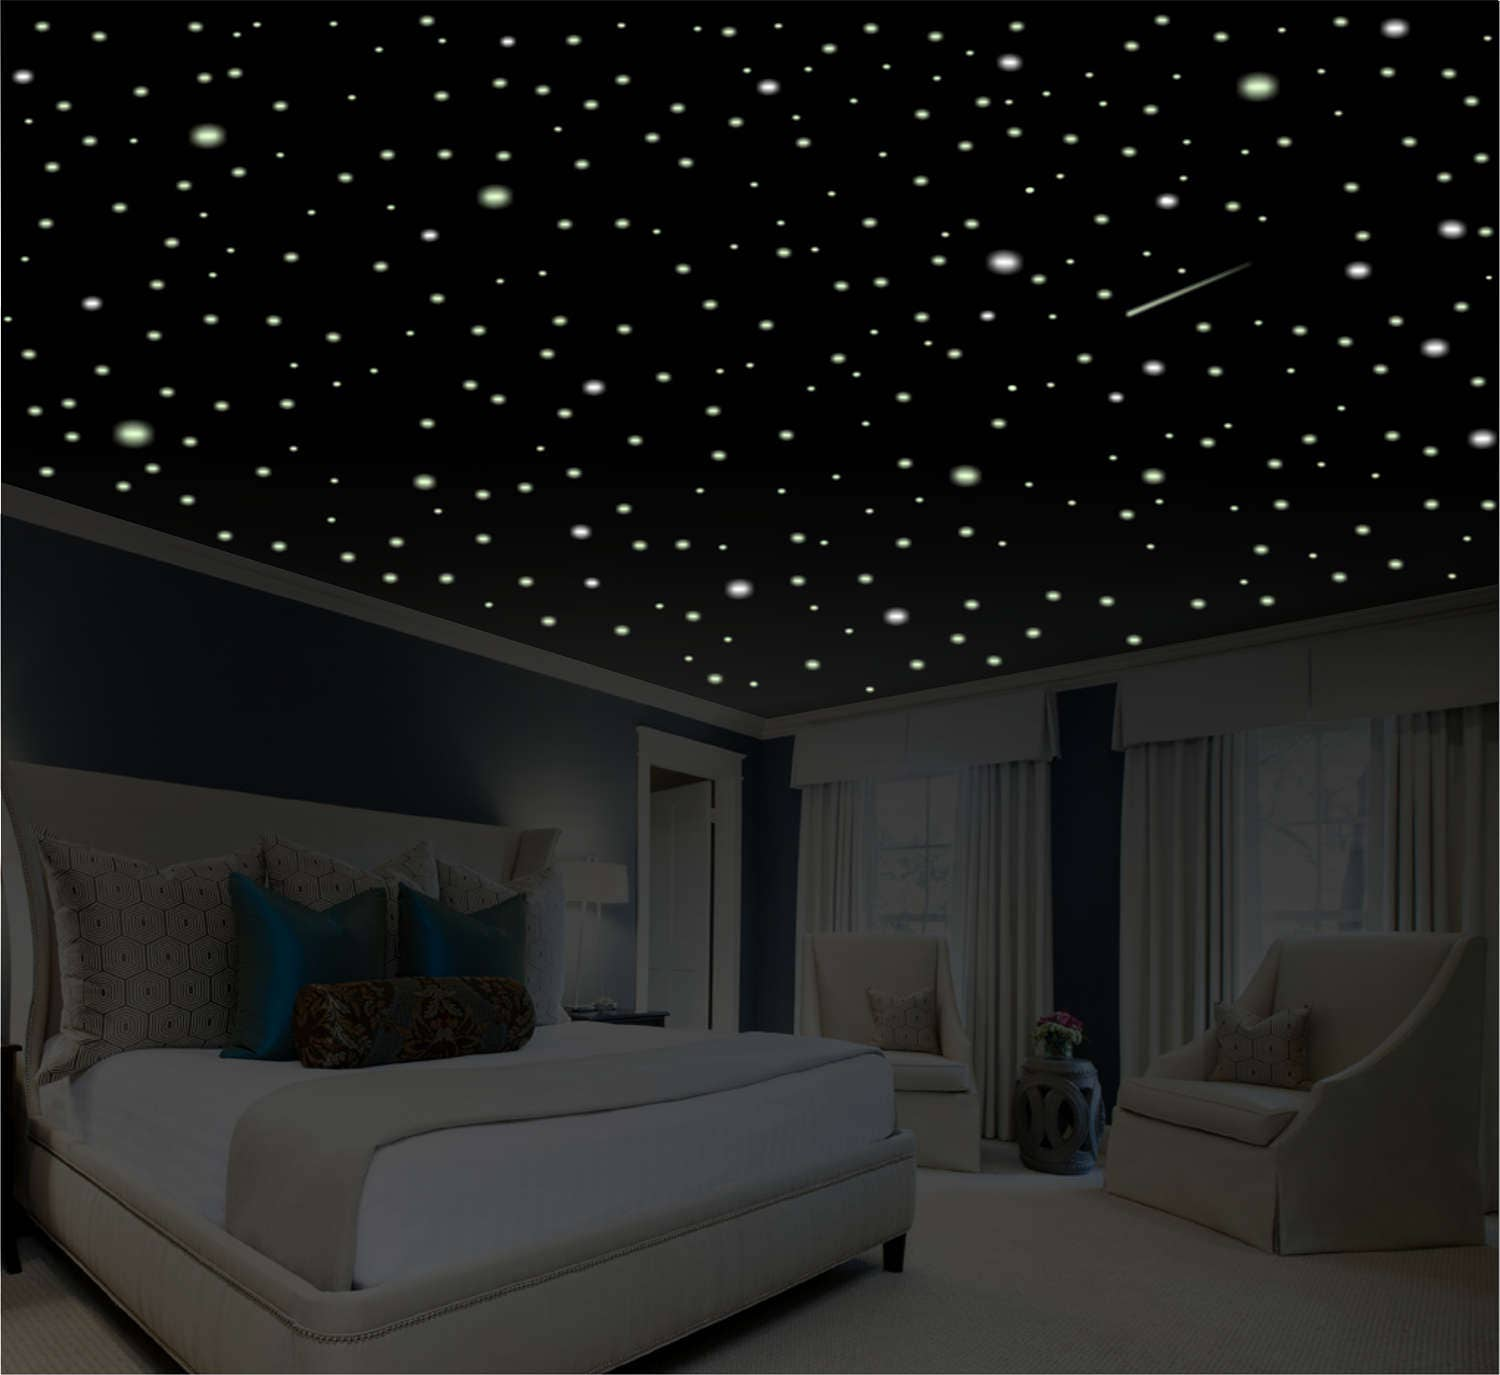 Romantic Bedroom Decor Star Wall Decal Glow In The Dark